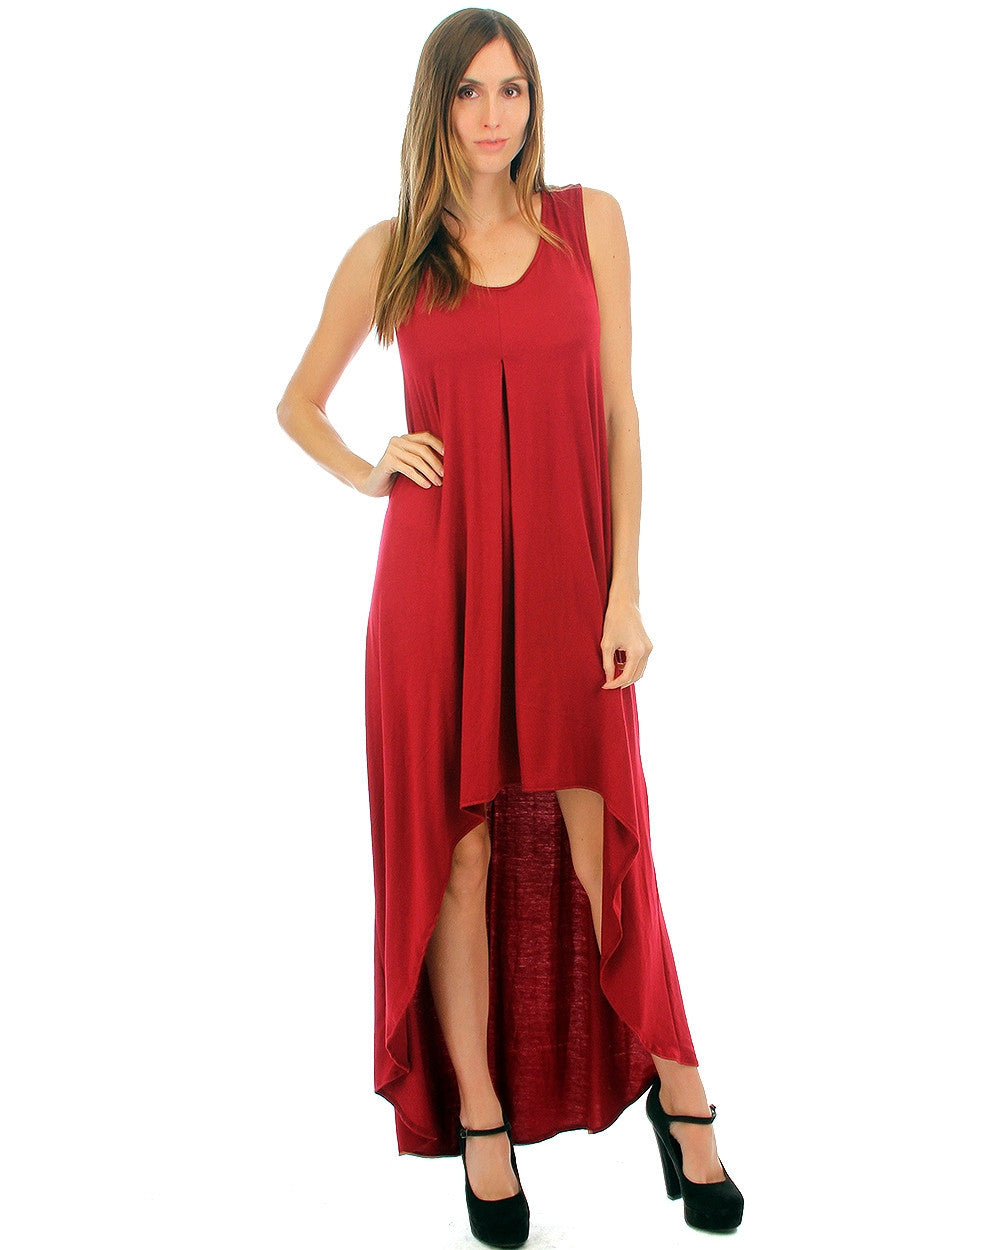 Free Style Hi-Low Maxi Dress In Ruby